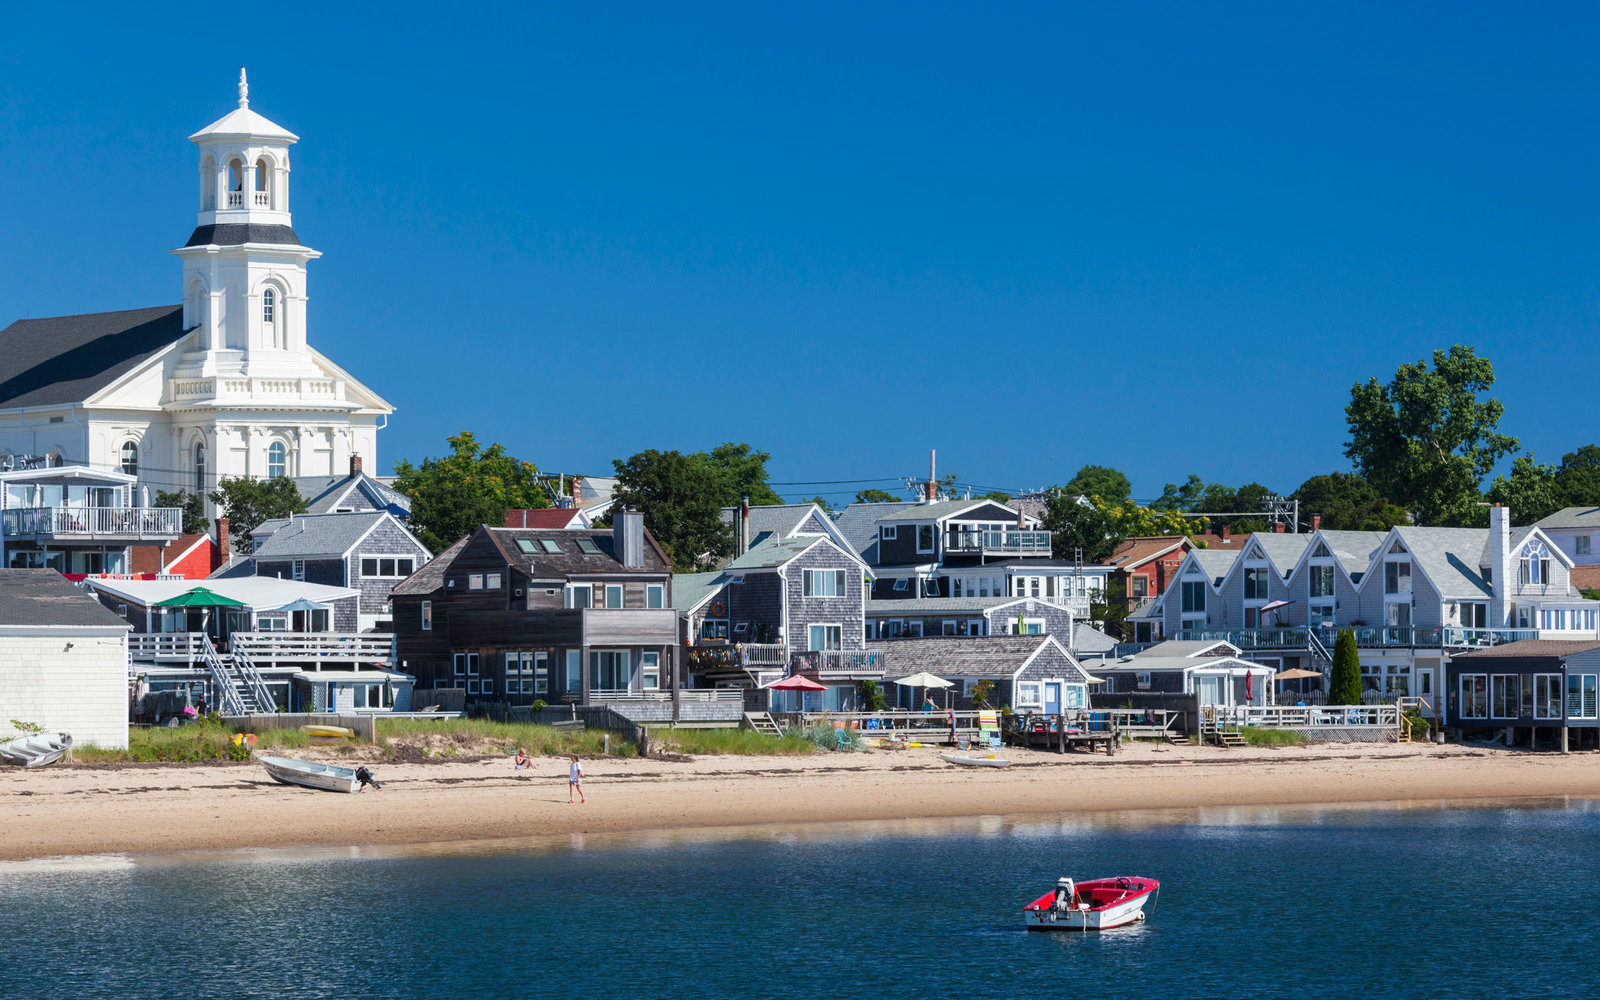 provincetown single personals Welcome to cape singles connection if you are single, divorced or widowed, you've come to the right place to make new friends and have fun on cape codwe offer a wide variety of affordable activities.